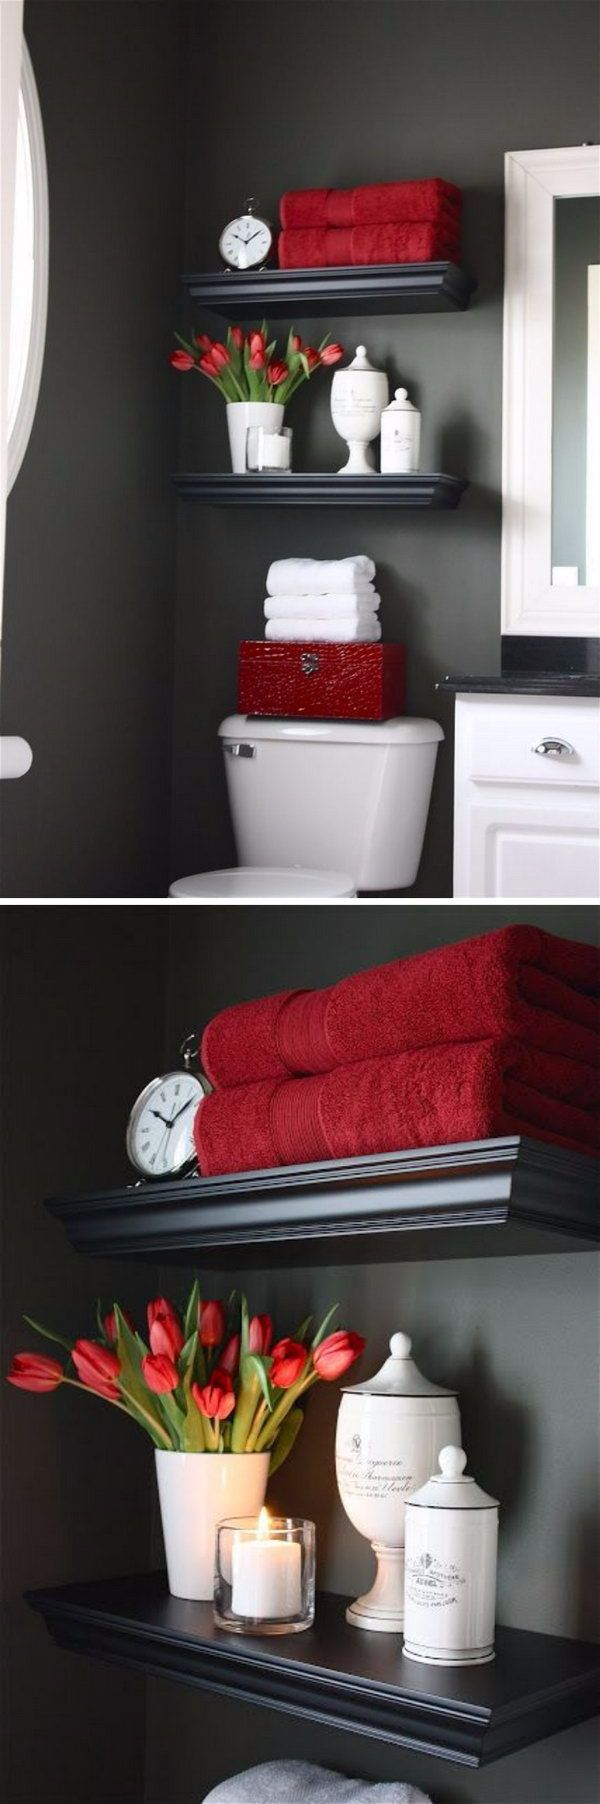 Best 25+ Toilet shelves ideas on Pinterest | Bathroom toilet decor ...